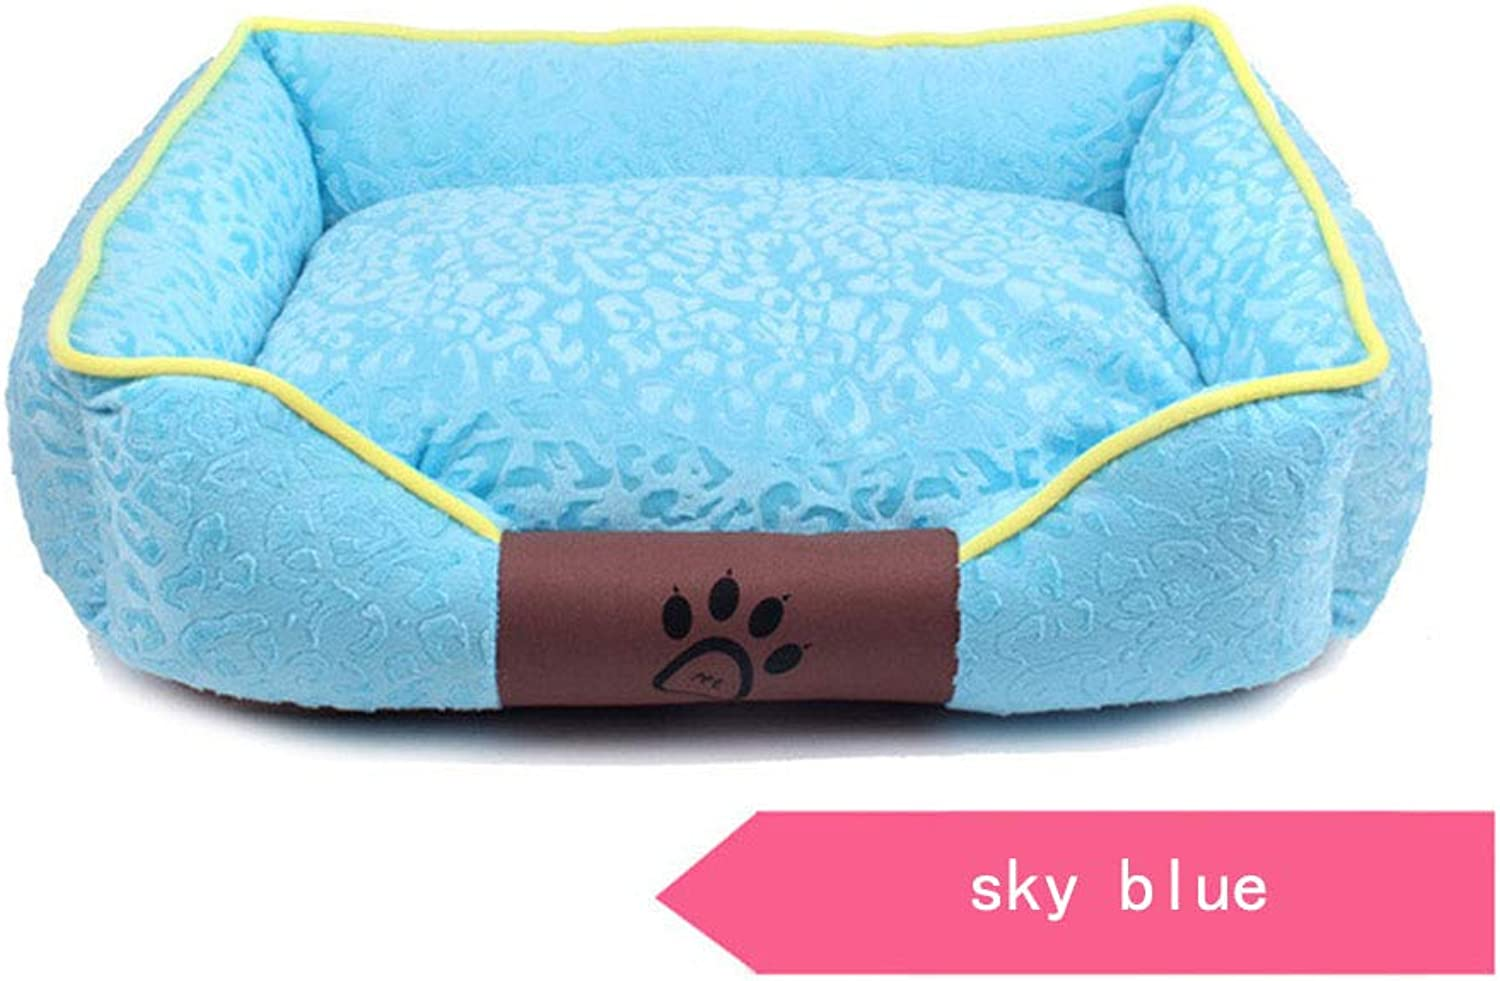 Lounge Dog Bed,Large Plush Dog Bed, Removable & Washable Cover W YKK Zippers, 63Cm X 53Cm X 25Cm, 9.2 Lbs,(Sky bluee, pink Red, Grass Green, Pink),bluee